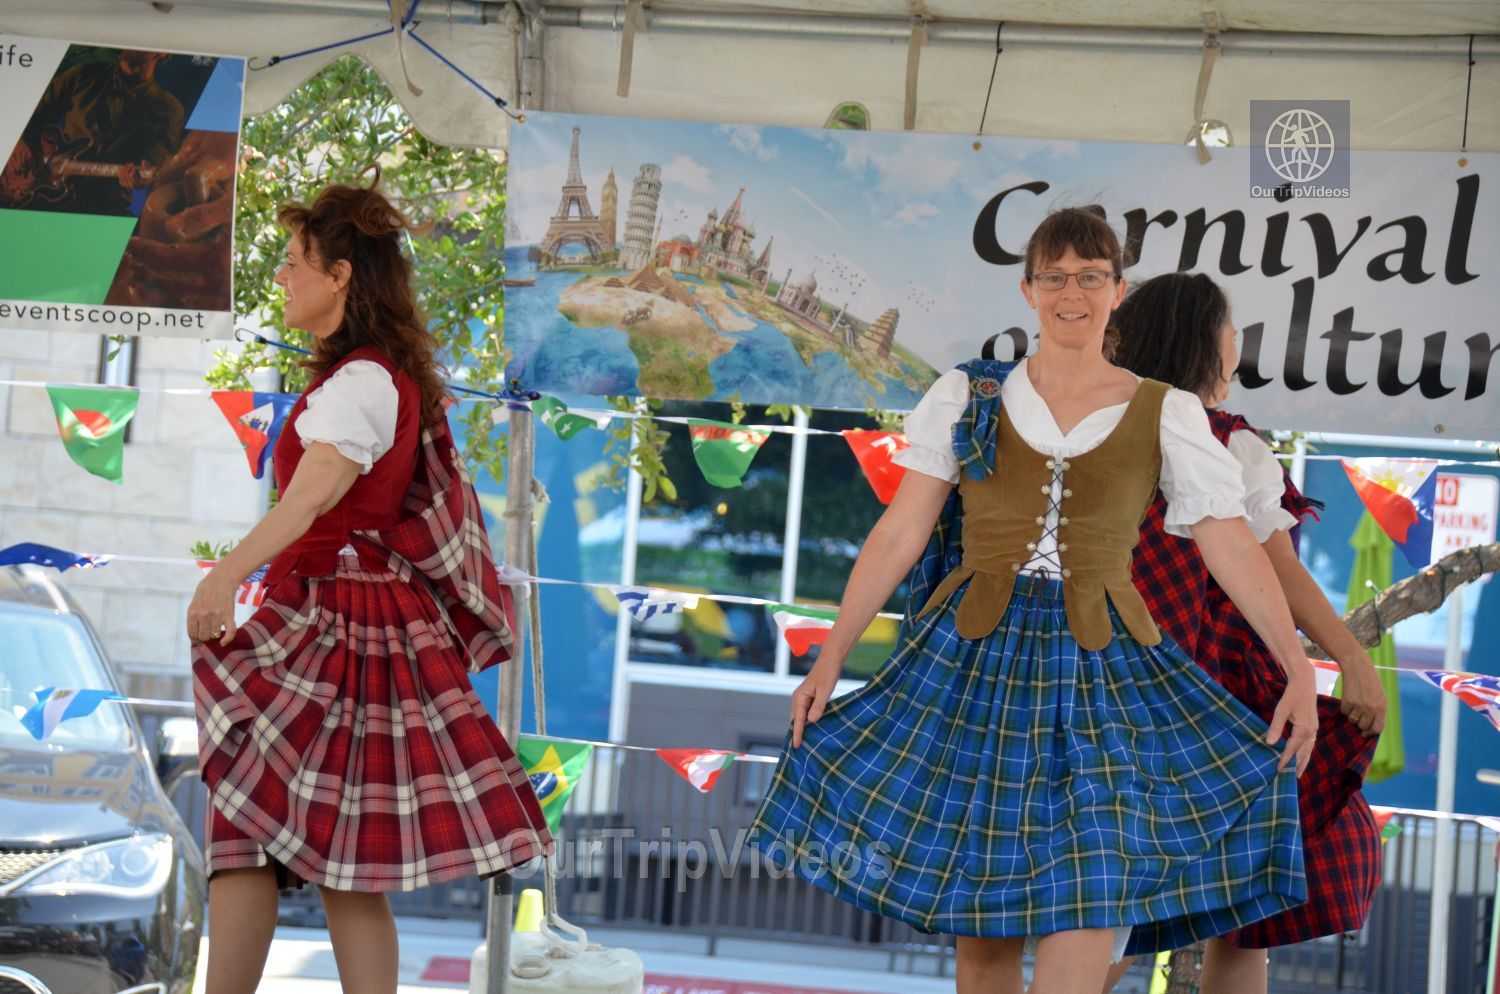 Carnival of Cultures, Cupertino, CA, USA - Picture 16 of 25